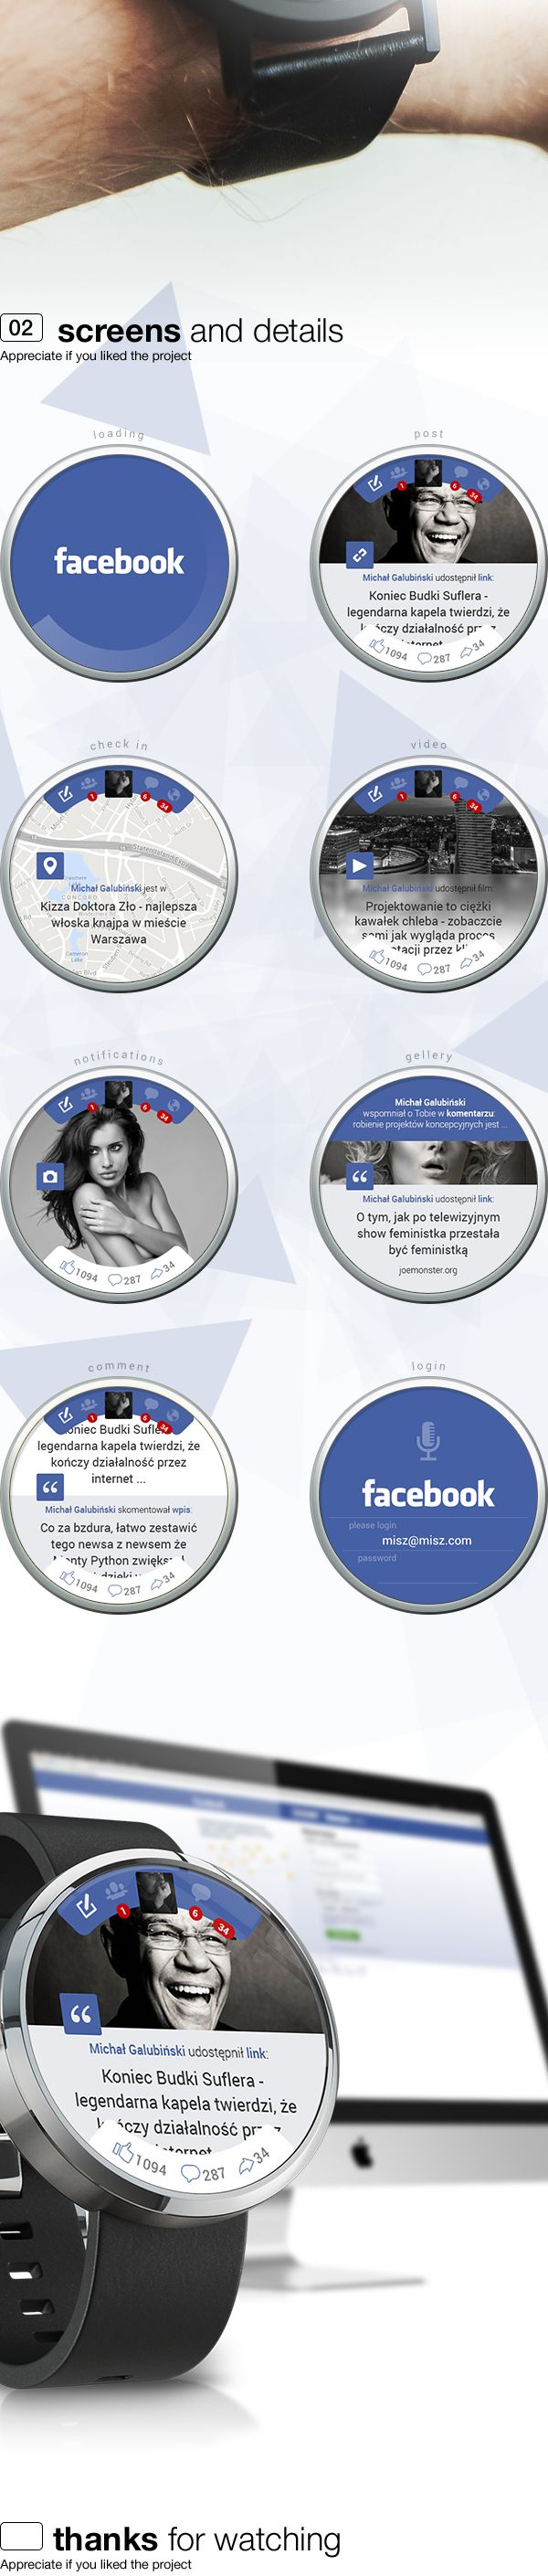 facebook - android wear app concept by Michal Galubinski, via Behance